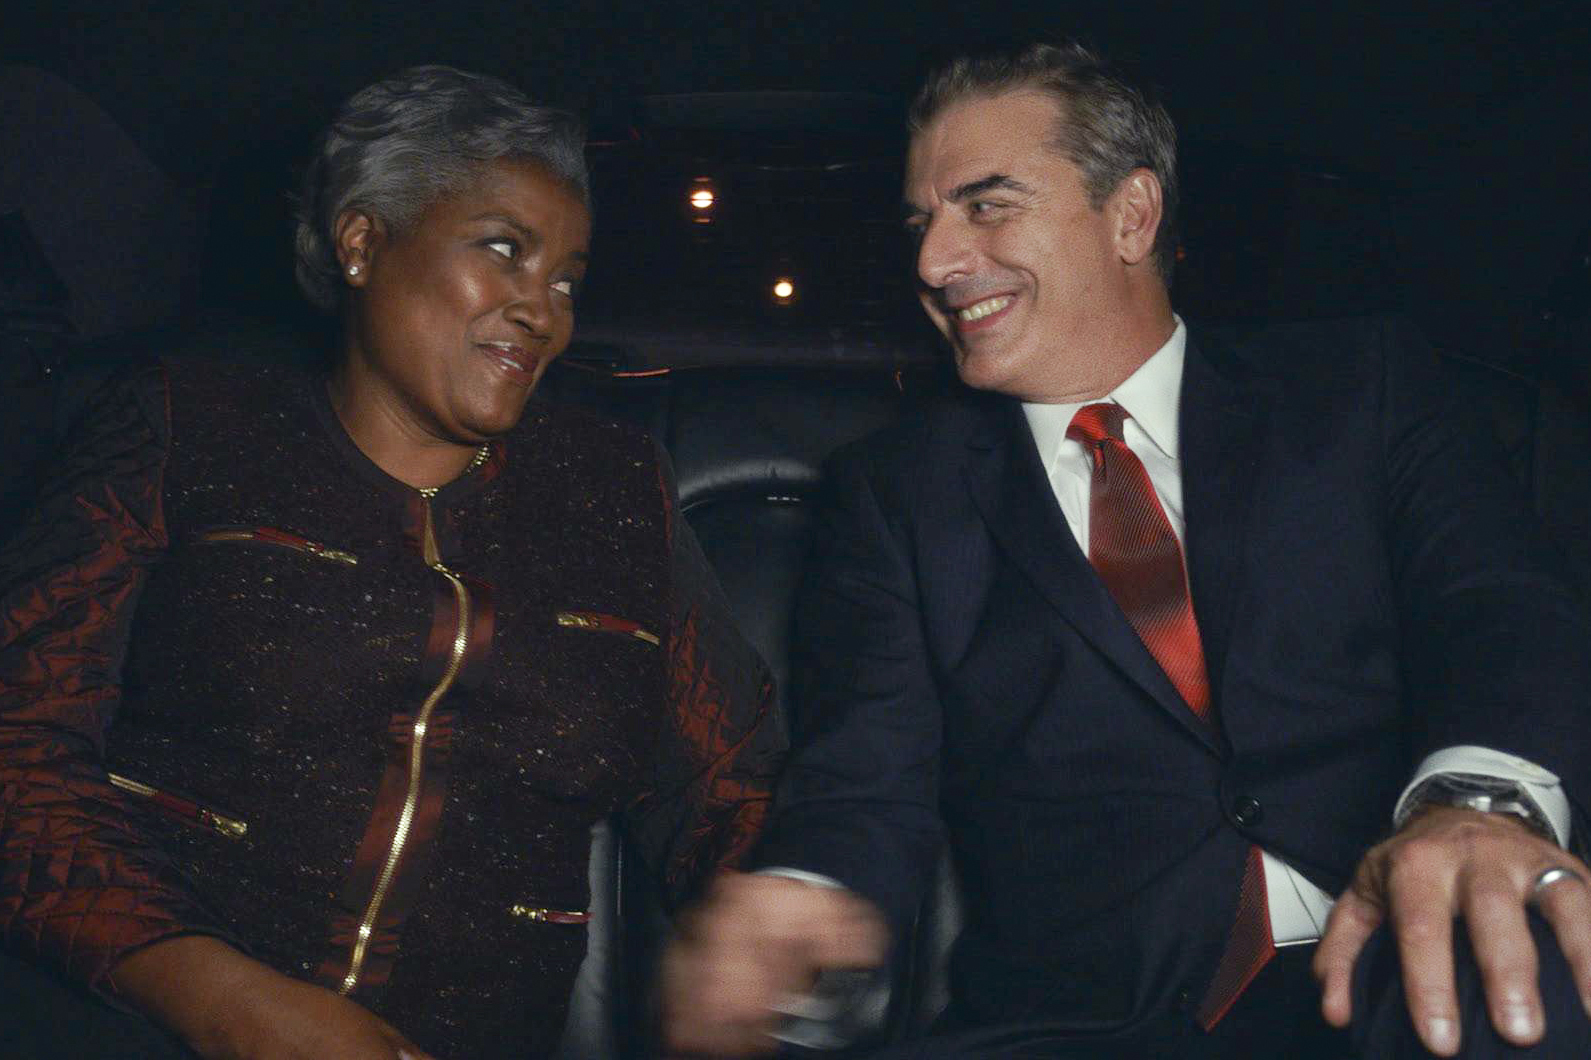 Political Strategist Donna Brazile and Chris Noth on The Good Wife, 2013.